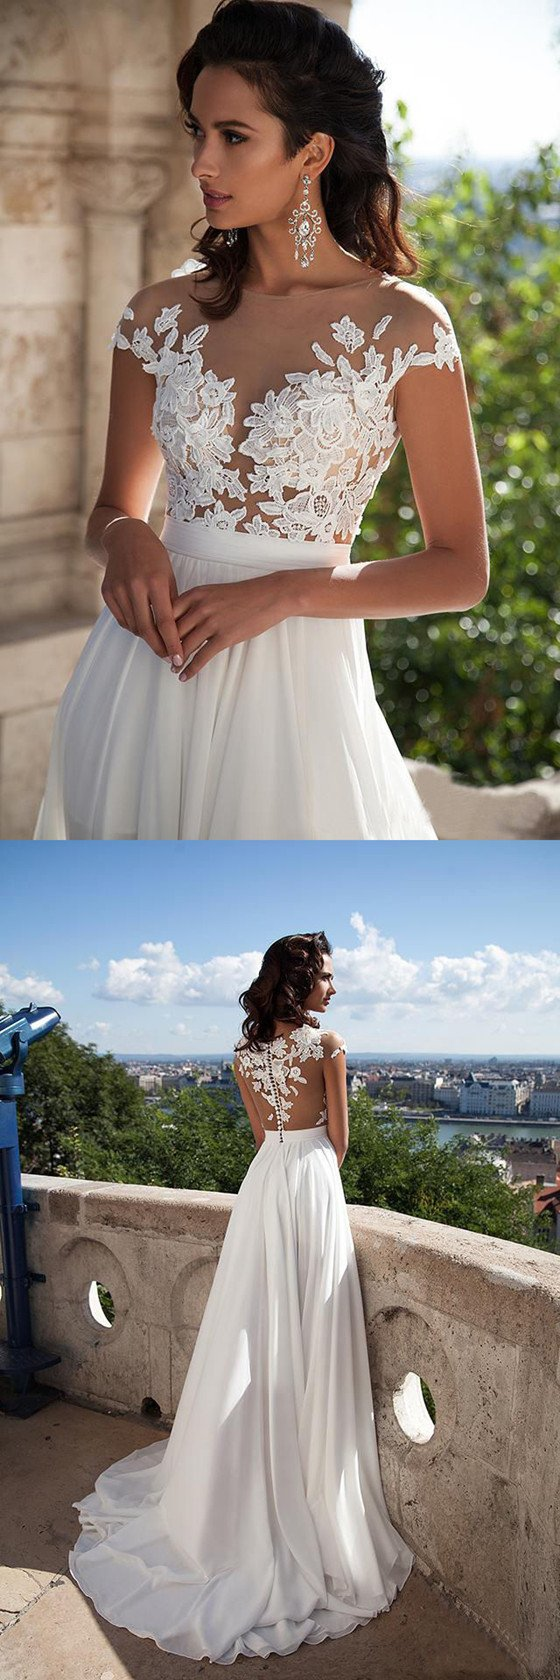 A-Line Sexy Modern Simple Chiffon Cap Sleeves High Slits Long Wedding Dress, WD0378